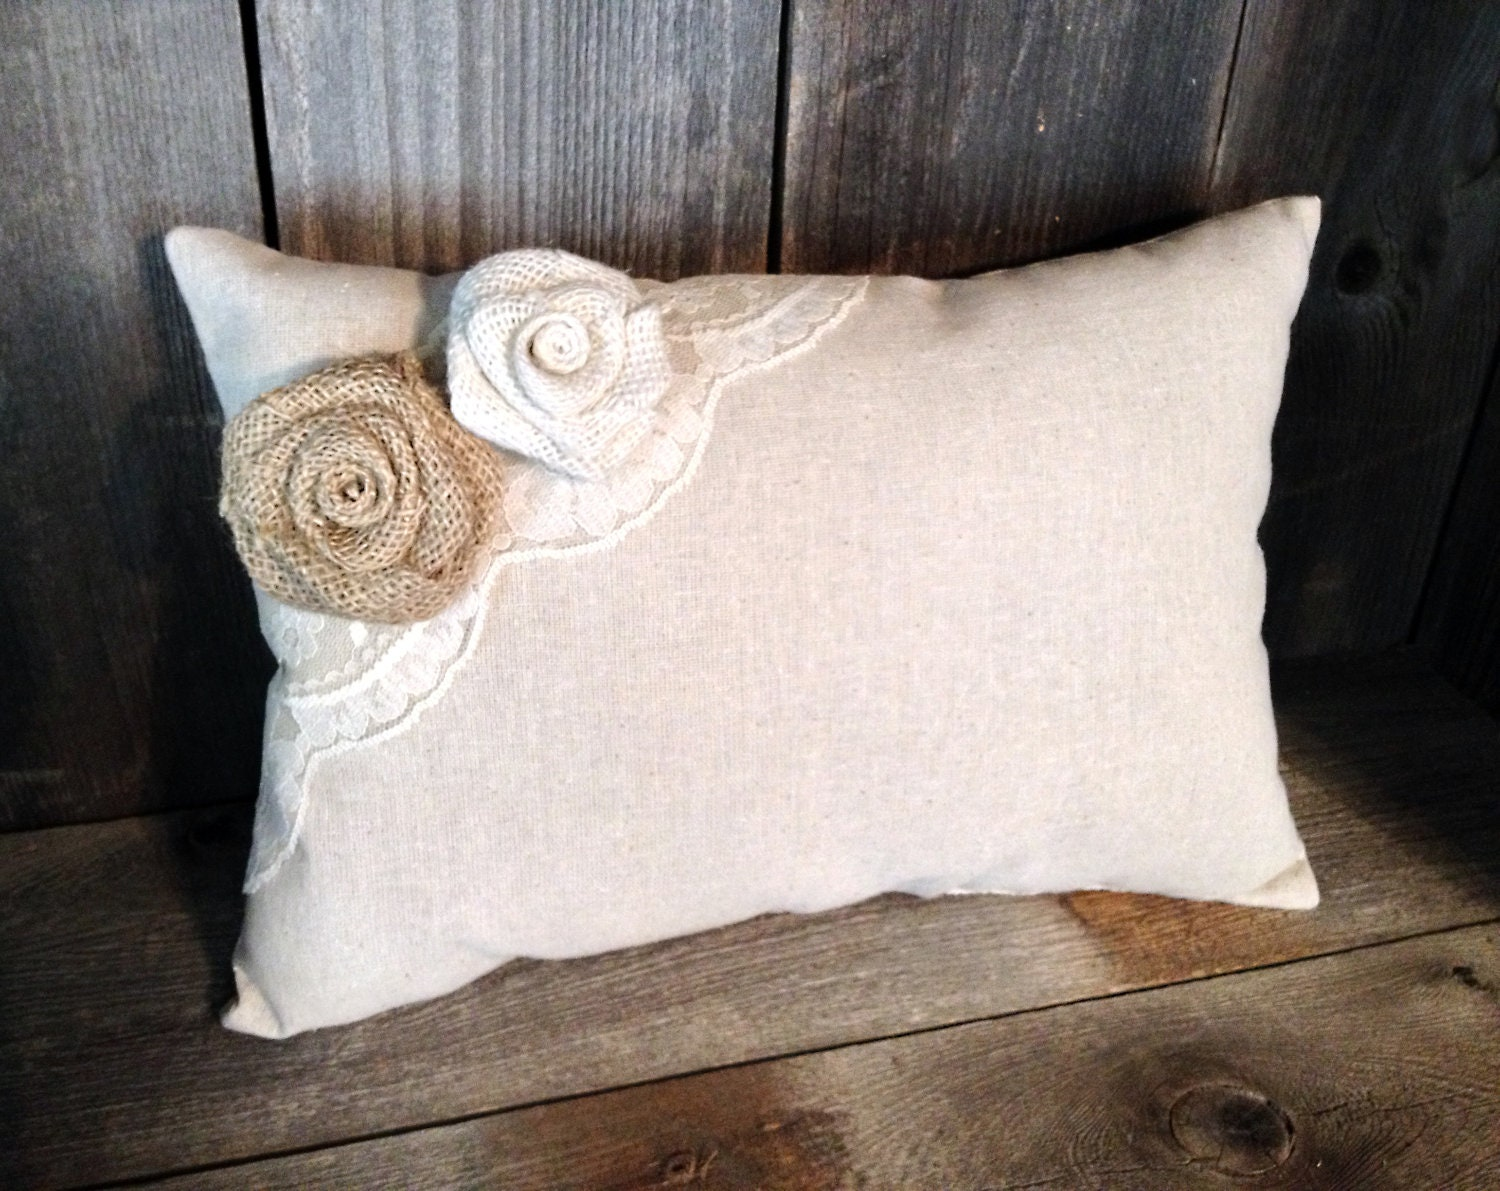 Decorative Linen Pillow with Vintage Ivory Lace & Burlap Rose Embellishments - Cottage Chic - Wedding Gift - Home Decor